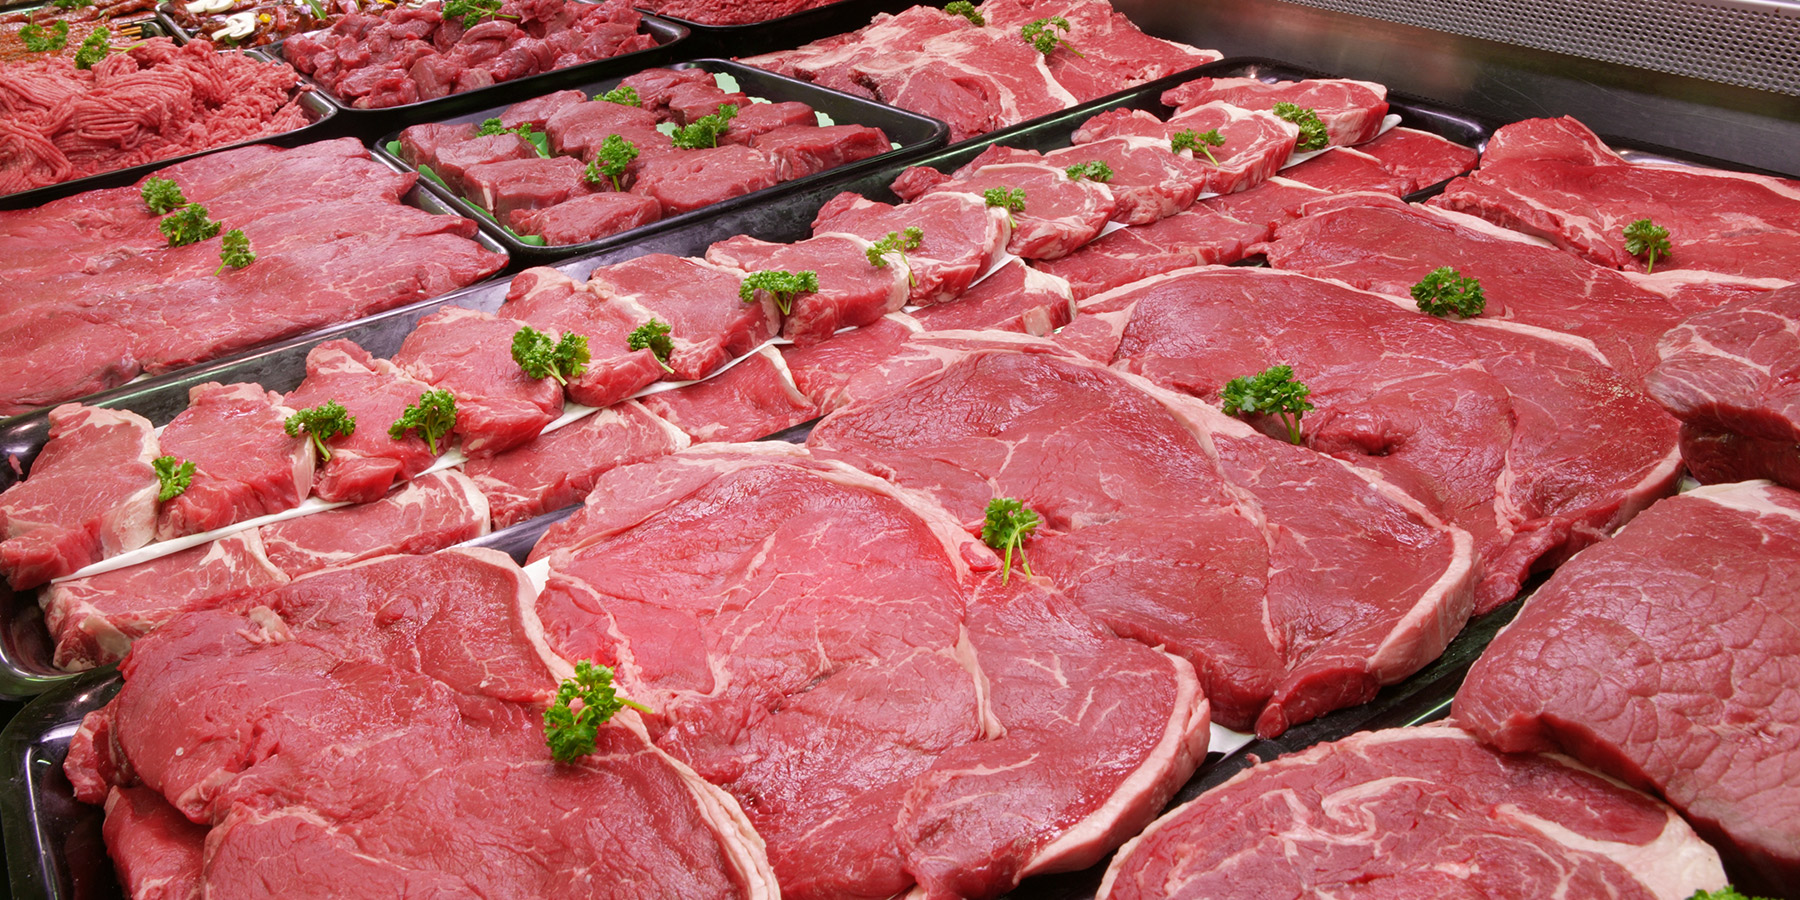 New AI-Based Strategy Can Assess Freshness of Beef Samples